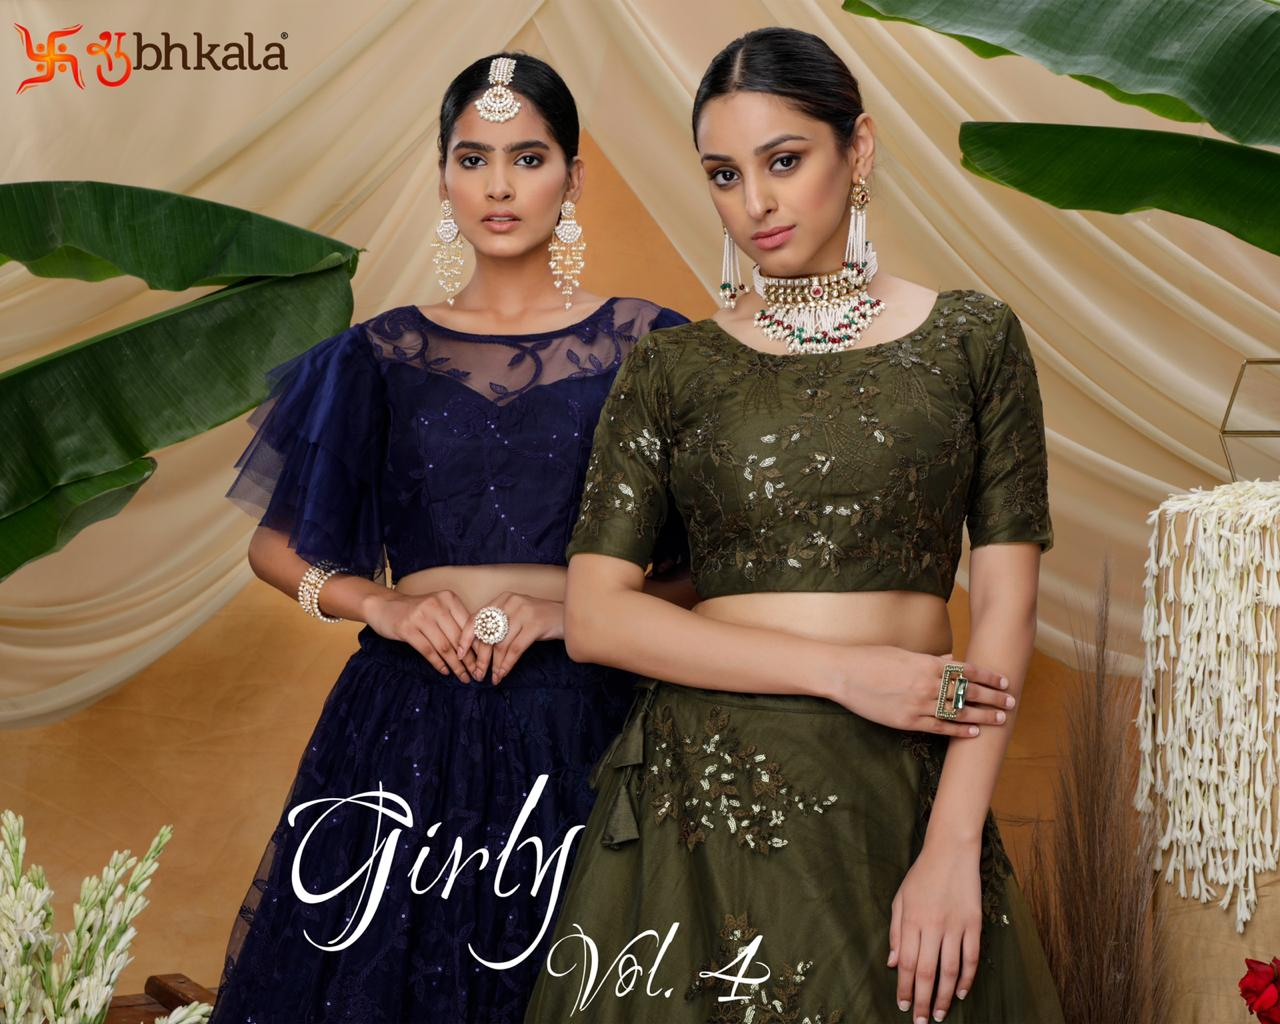 Shubhkala By Girly Vol 5 Designer Exclusive Net Lehenga Collection In India